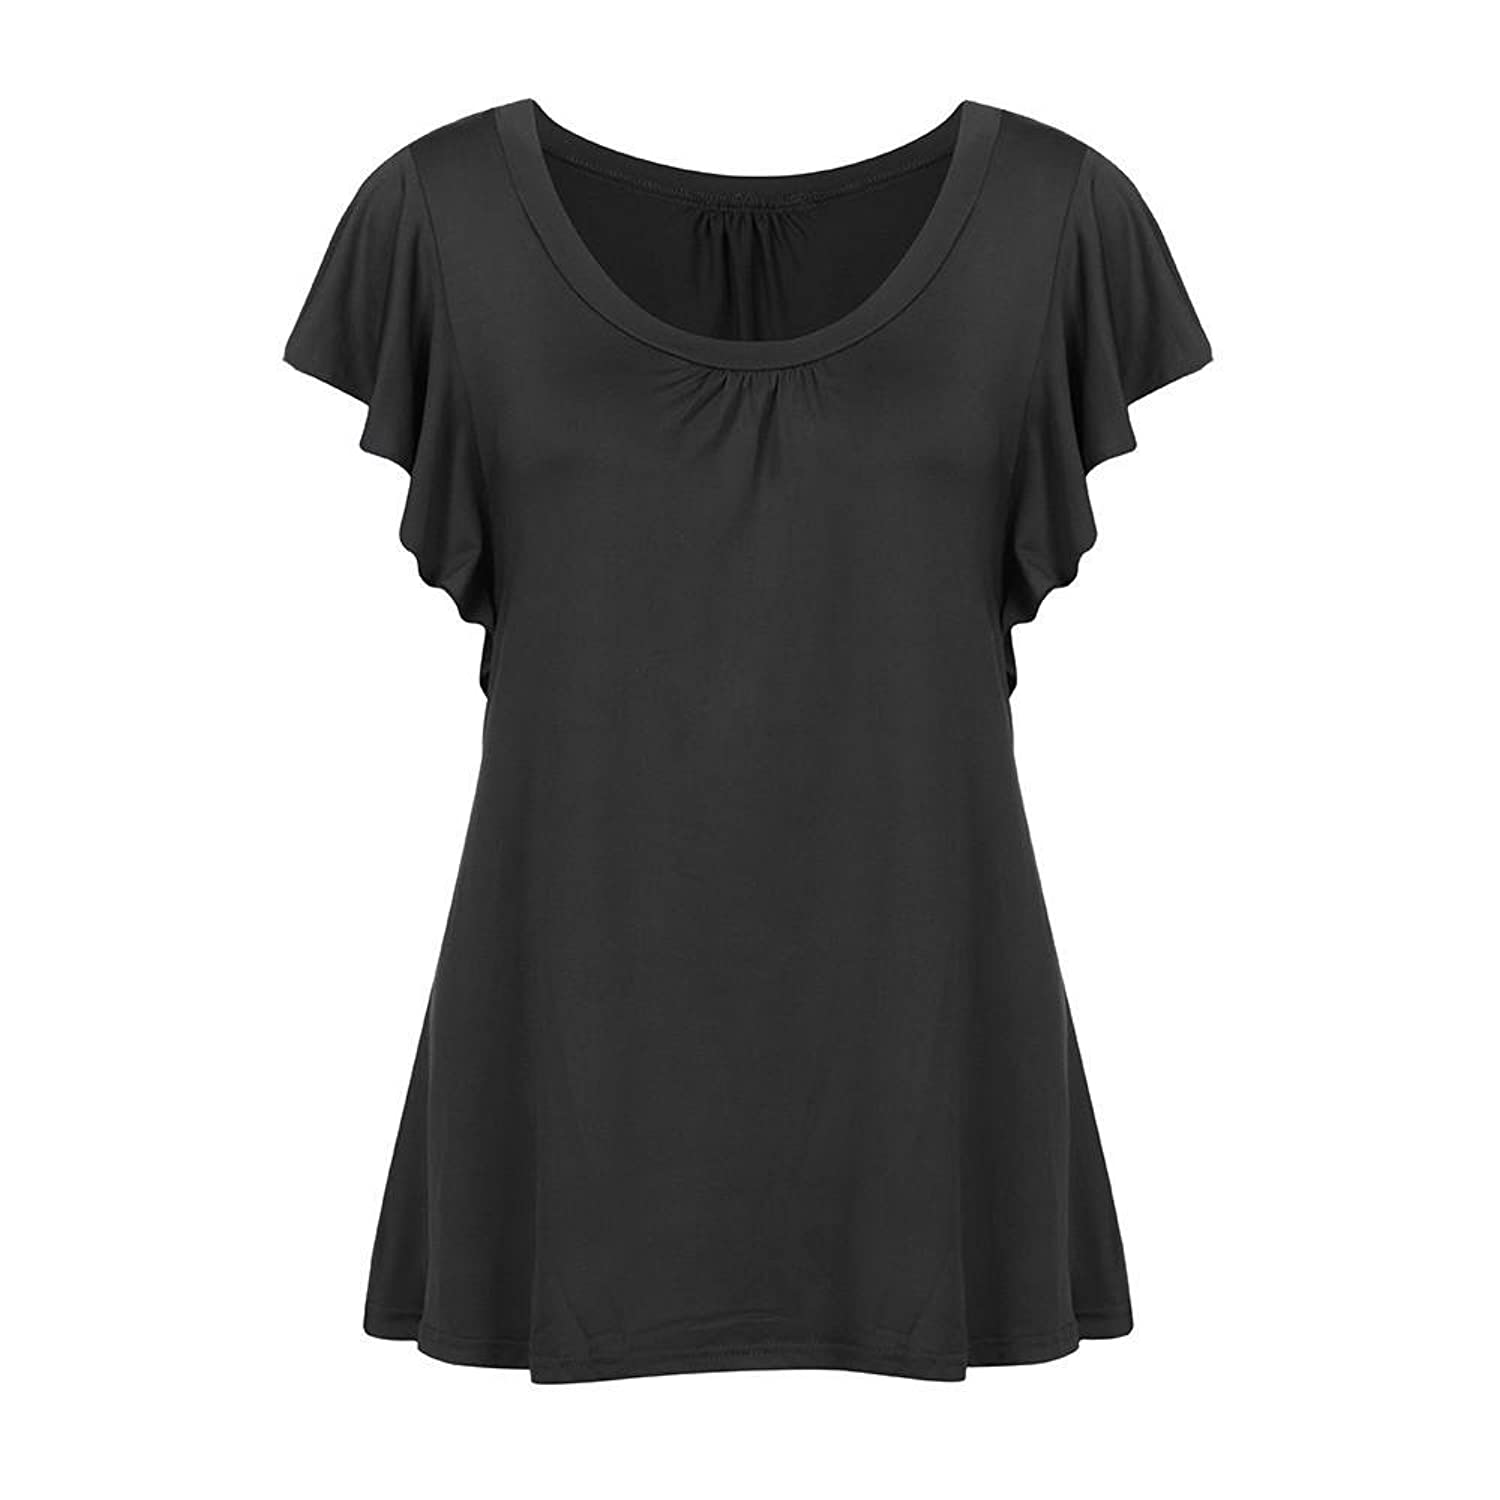 Amazon.com: DondPO Womens Blouse Solid Short Sleeve Round Neck T-Shirt Comfy Casual Pleated Tops Casual Flowy Tee Shirt Tunic Plus Size: Clothing